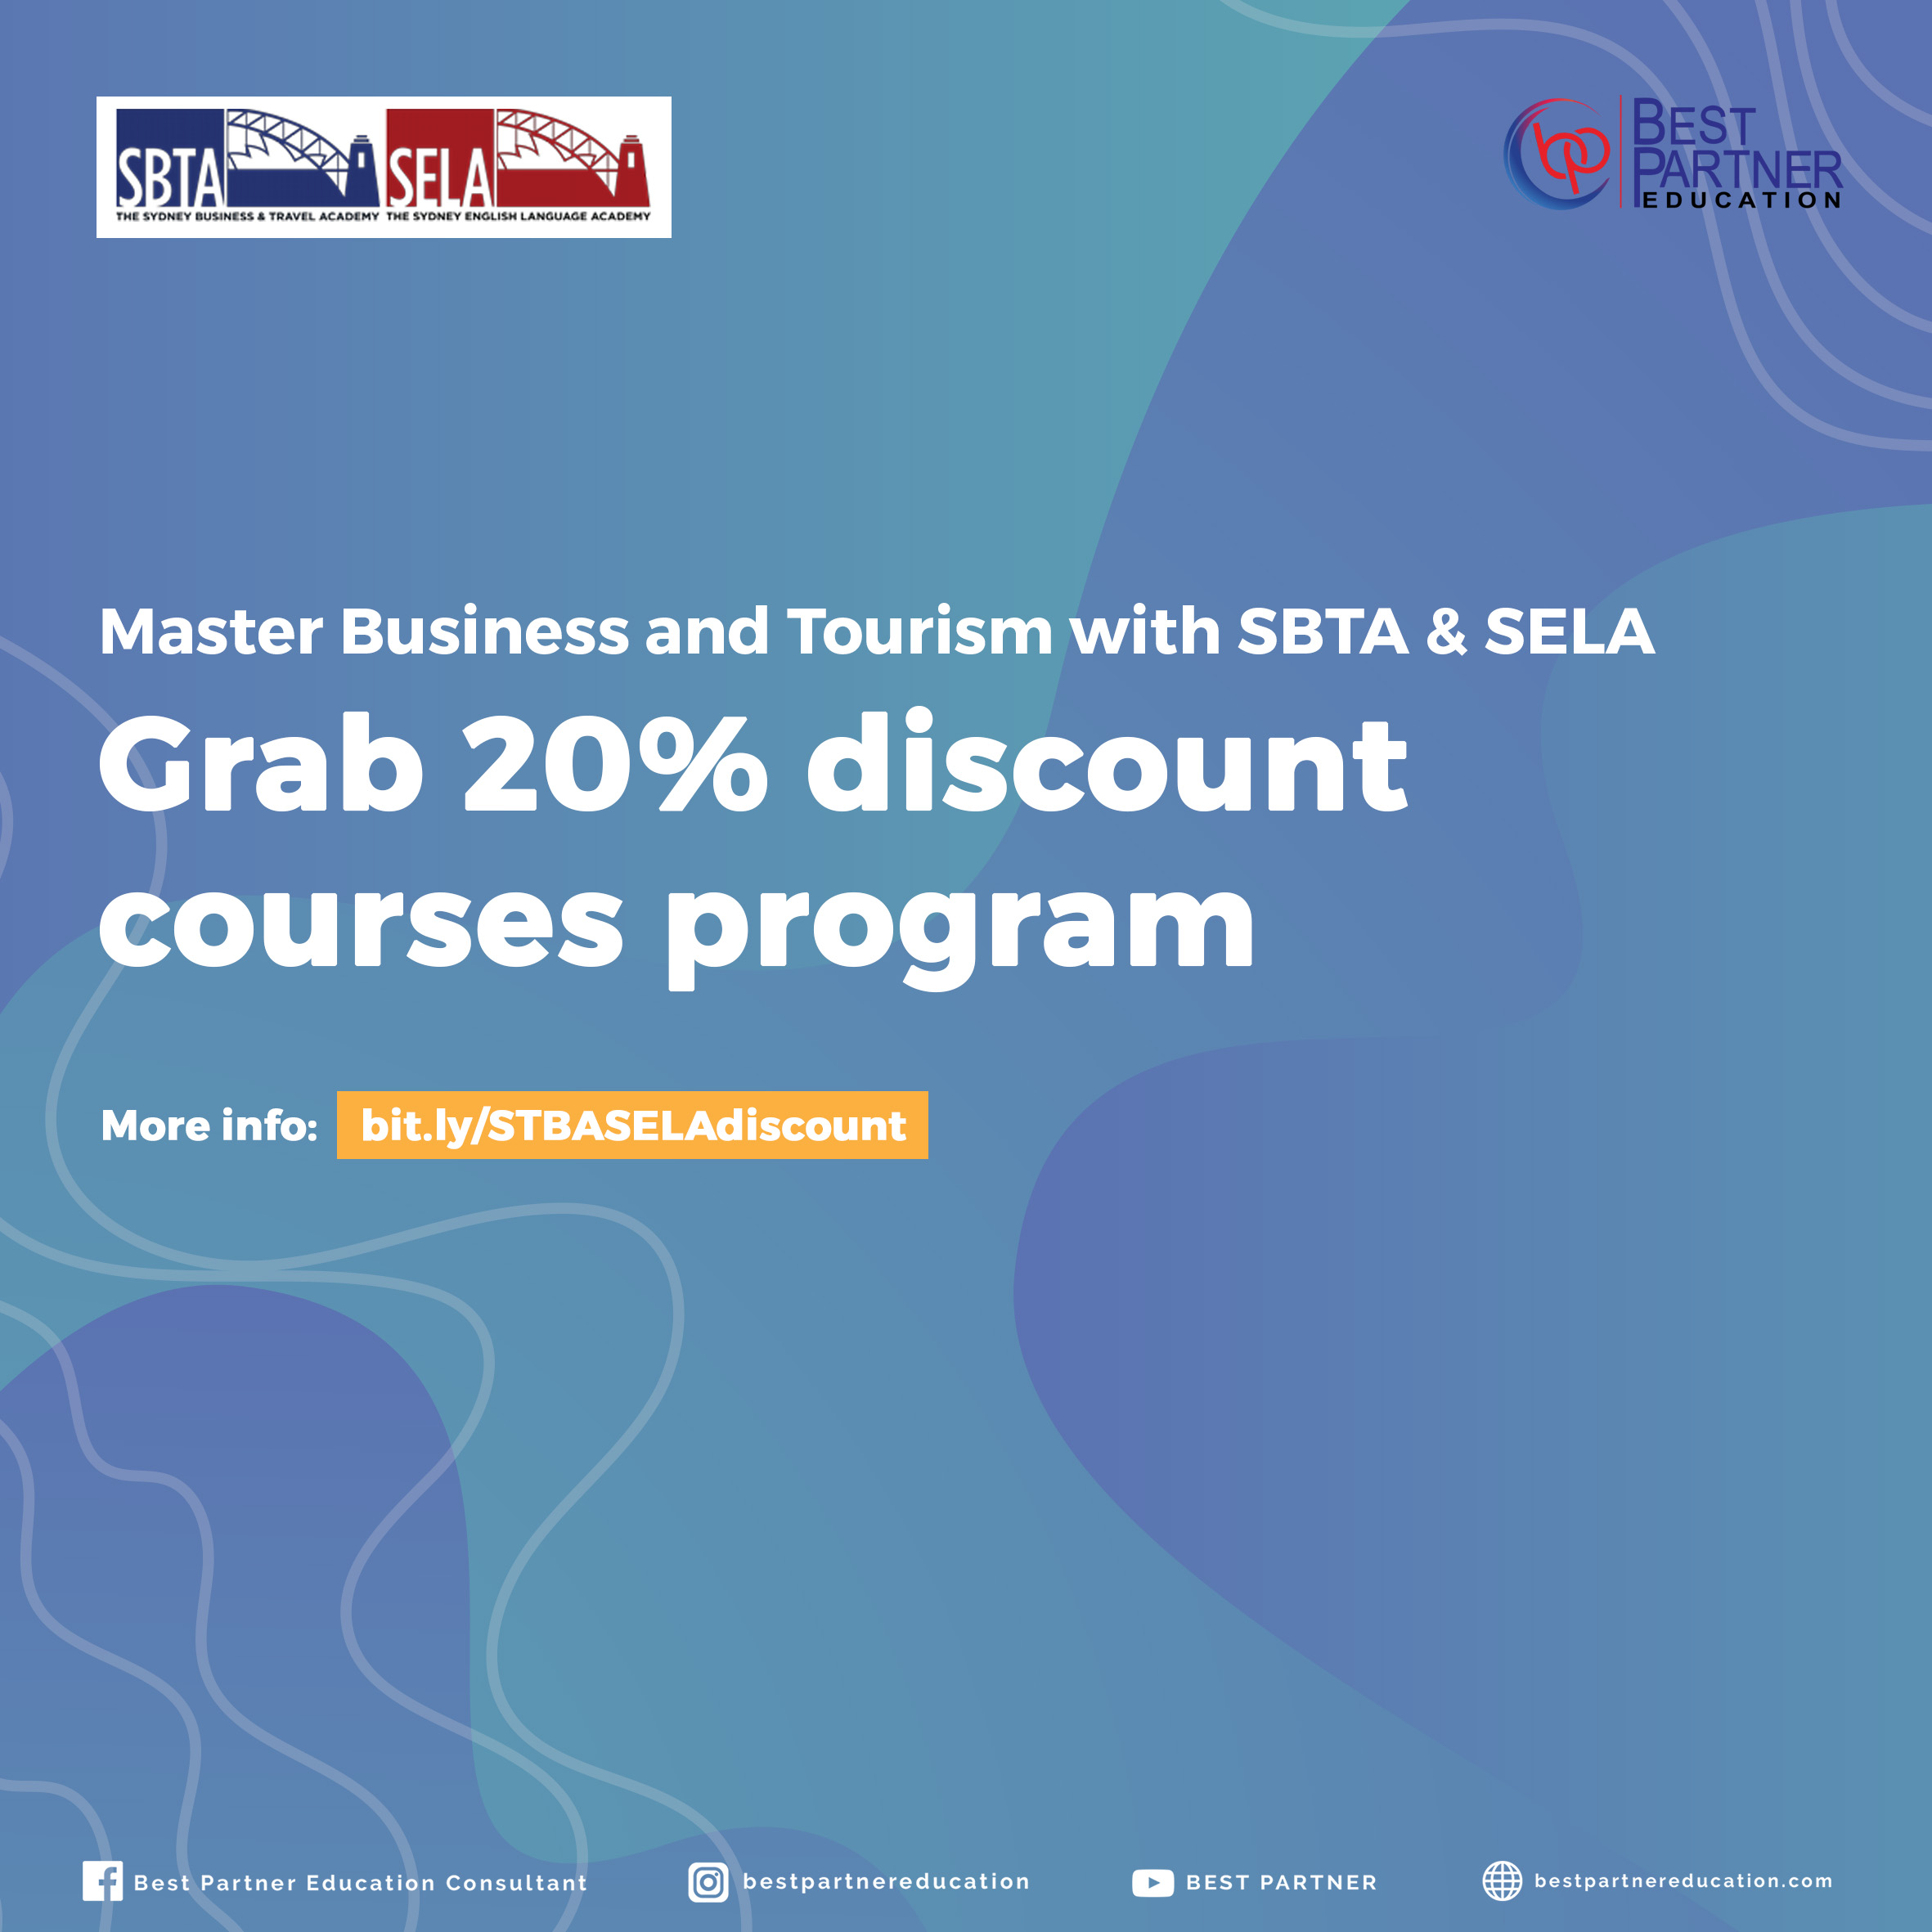 Master Business and Tourism with SBTA & SELA! Grab 20% discount courses program